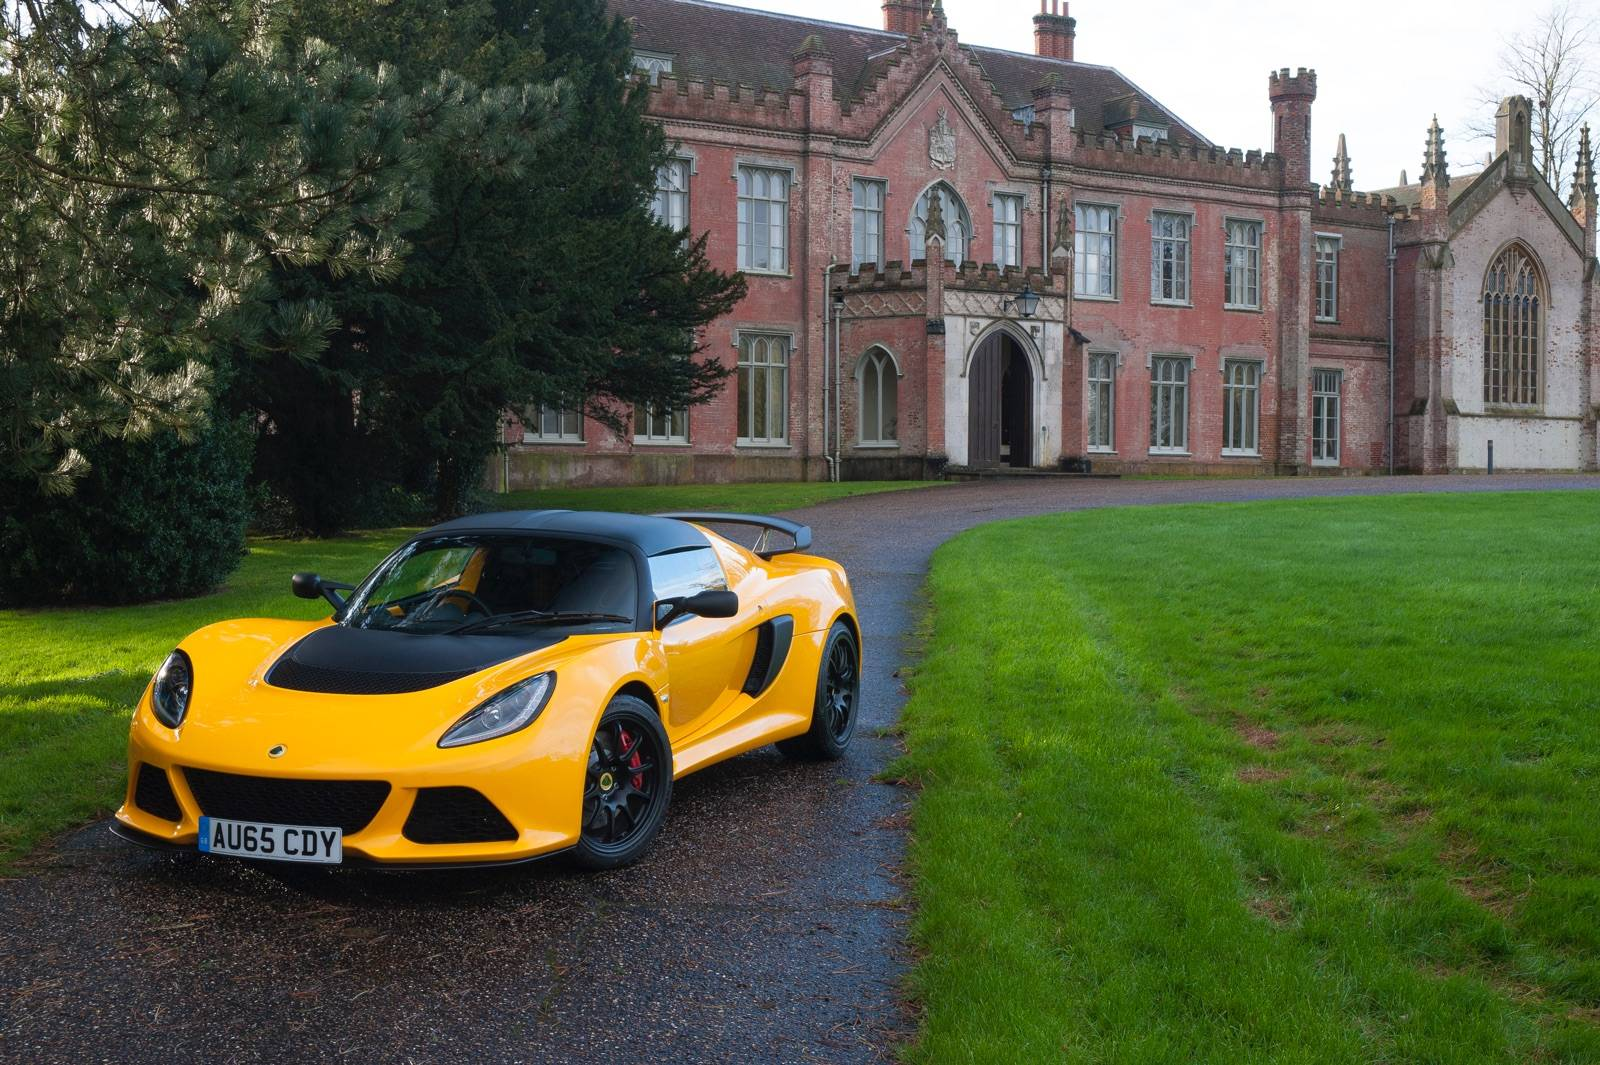 Third Generation Lotus Exige - This Is Lotus Exige Sport 350 3